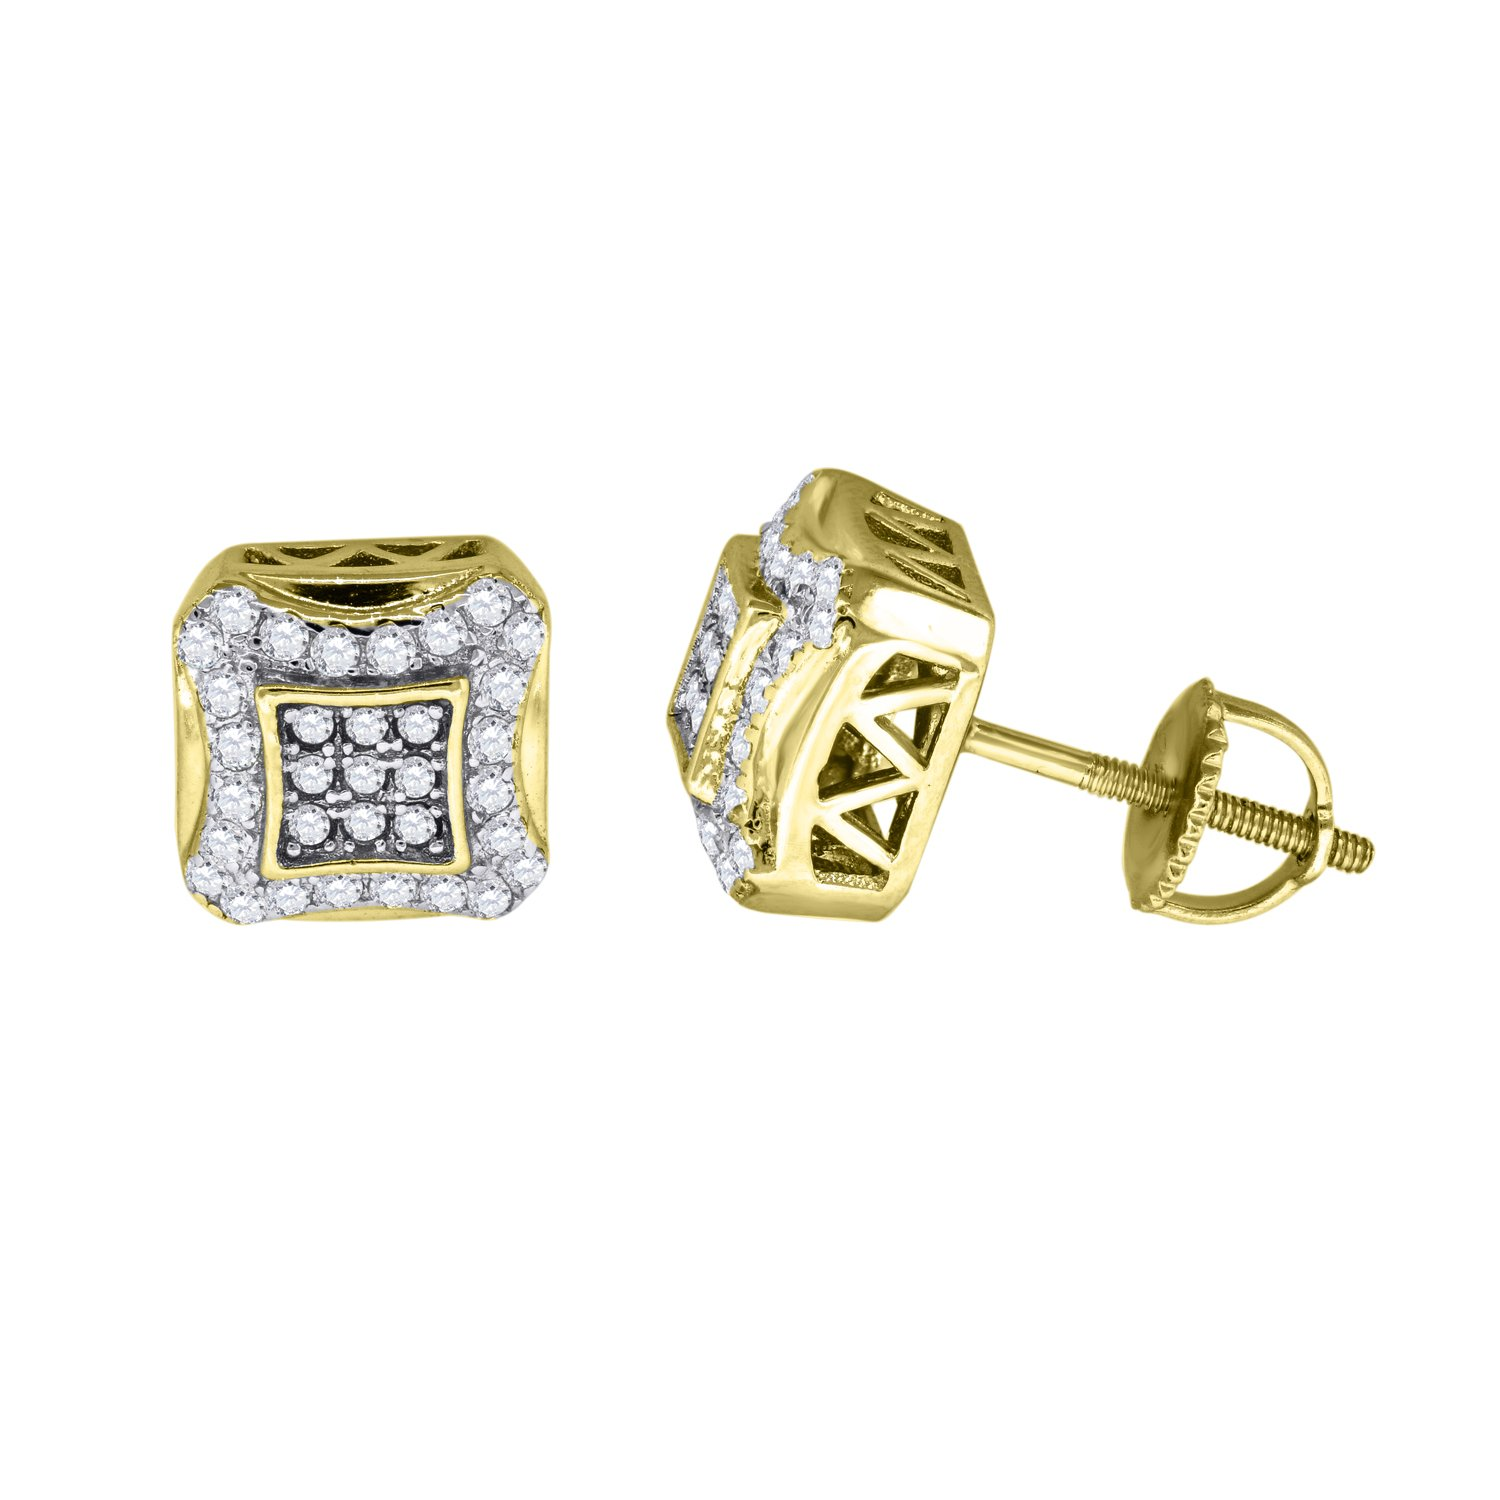 FB Jewels 925 Sterling Silver Mens Yellow-tone Cubic Zirconia CZ Round Stud Earrings